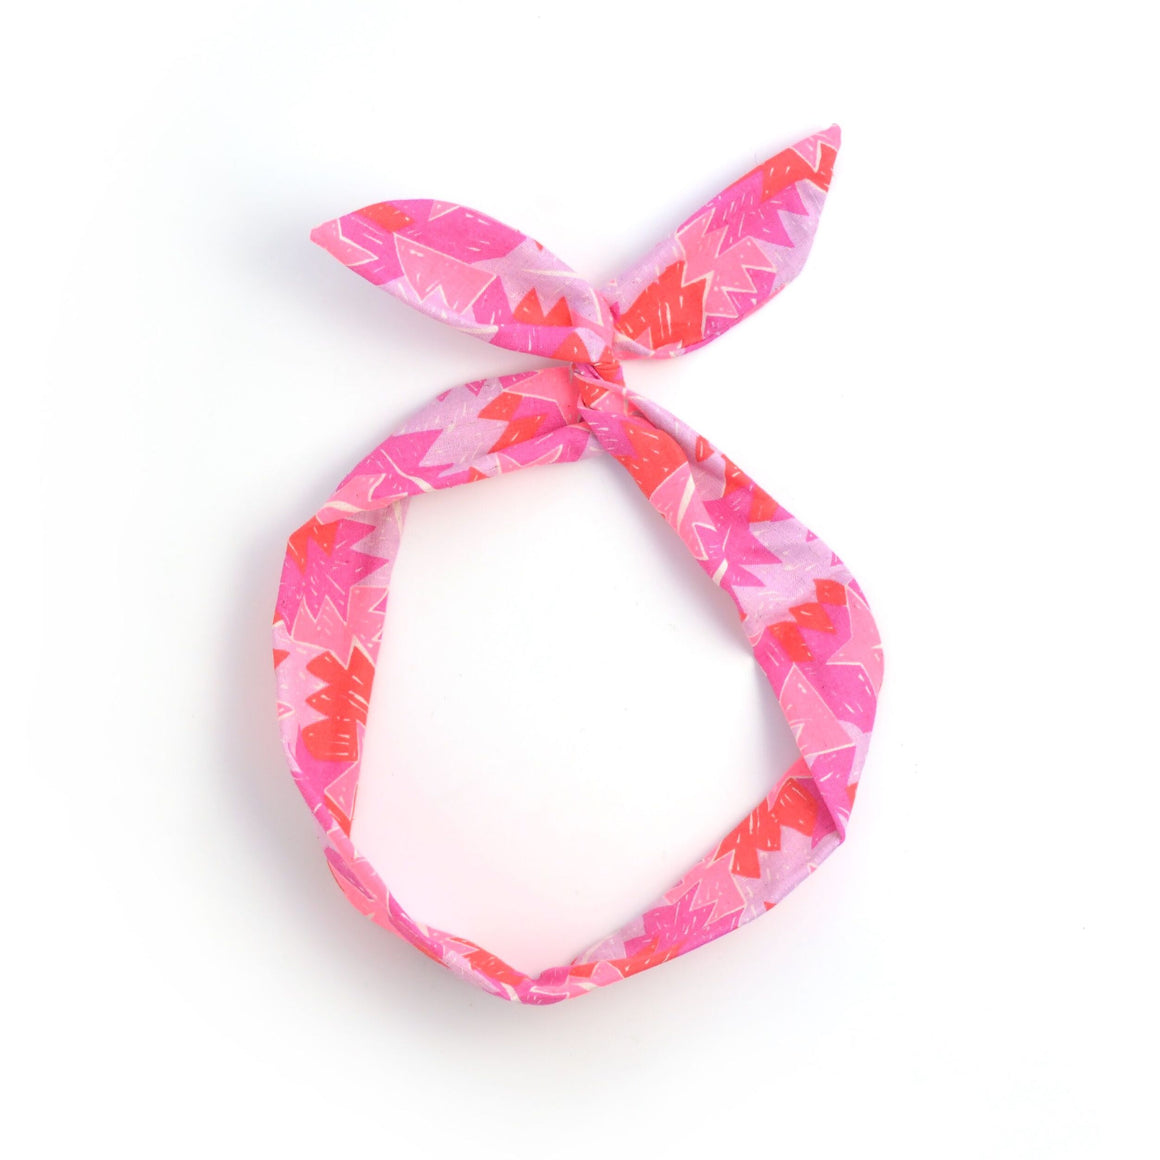 neon zig-zag twist tie // hello shiso hair accessories for girls